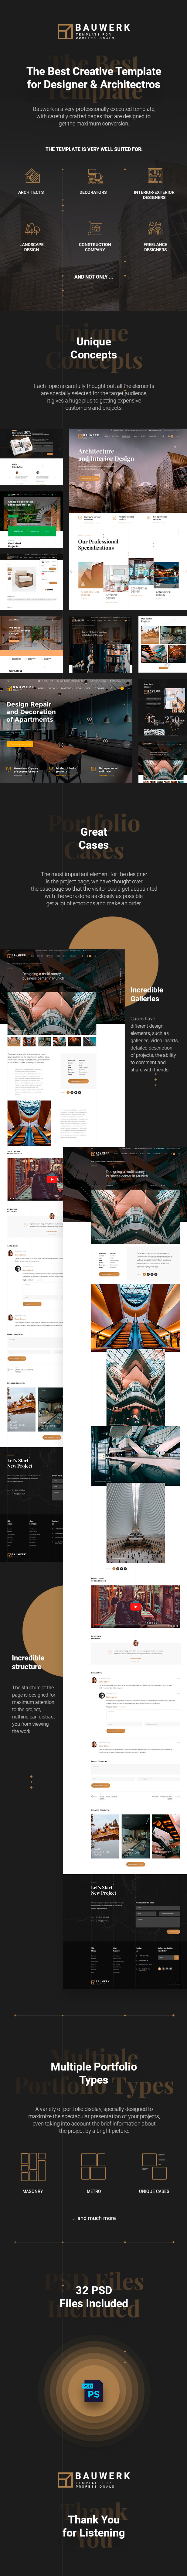 Bauwerk | Interior Design & Architecture PSD Template